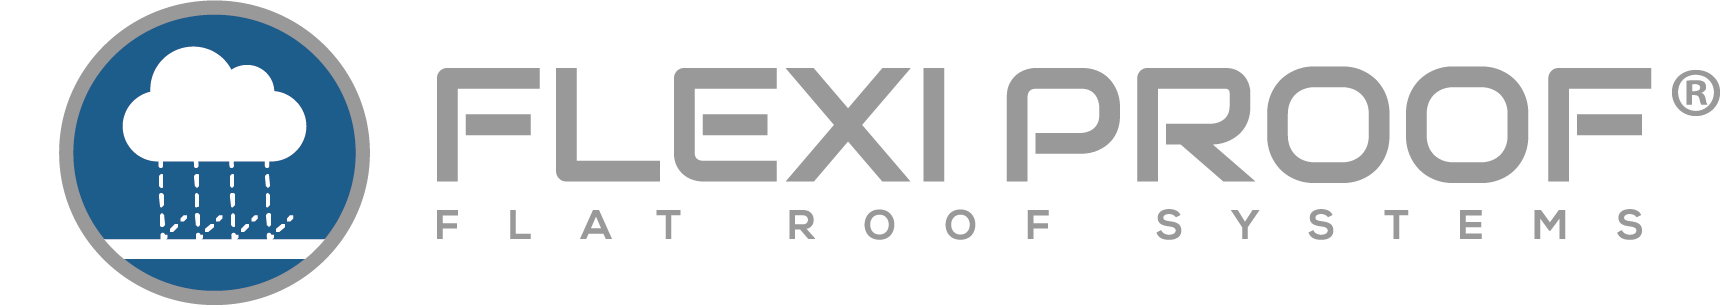 Flexi Proof Flat Roof Systems